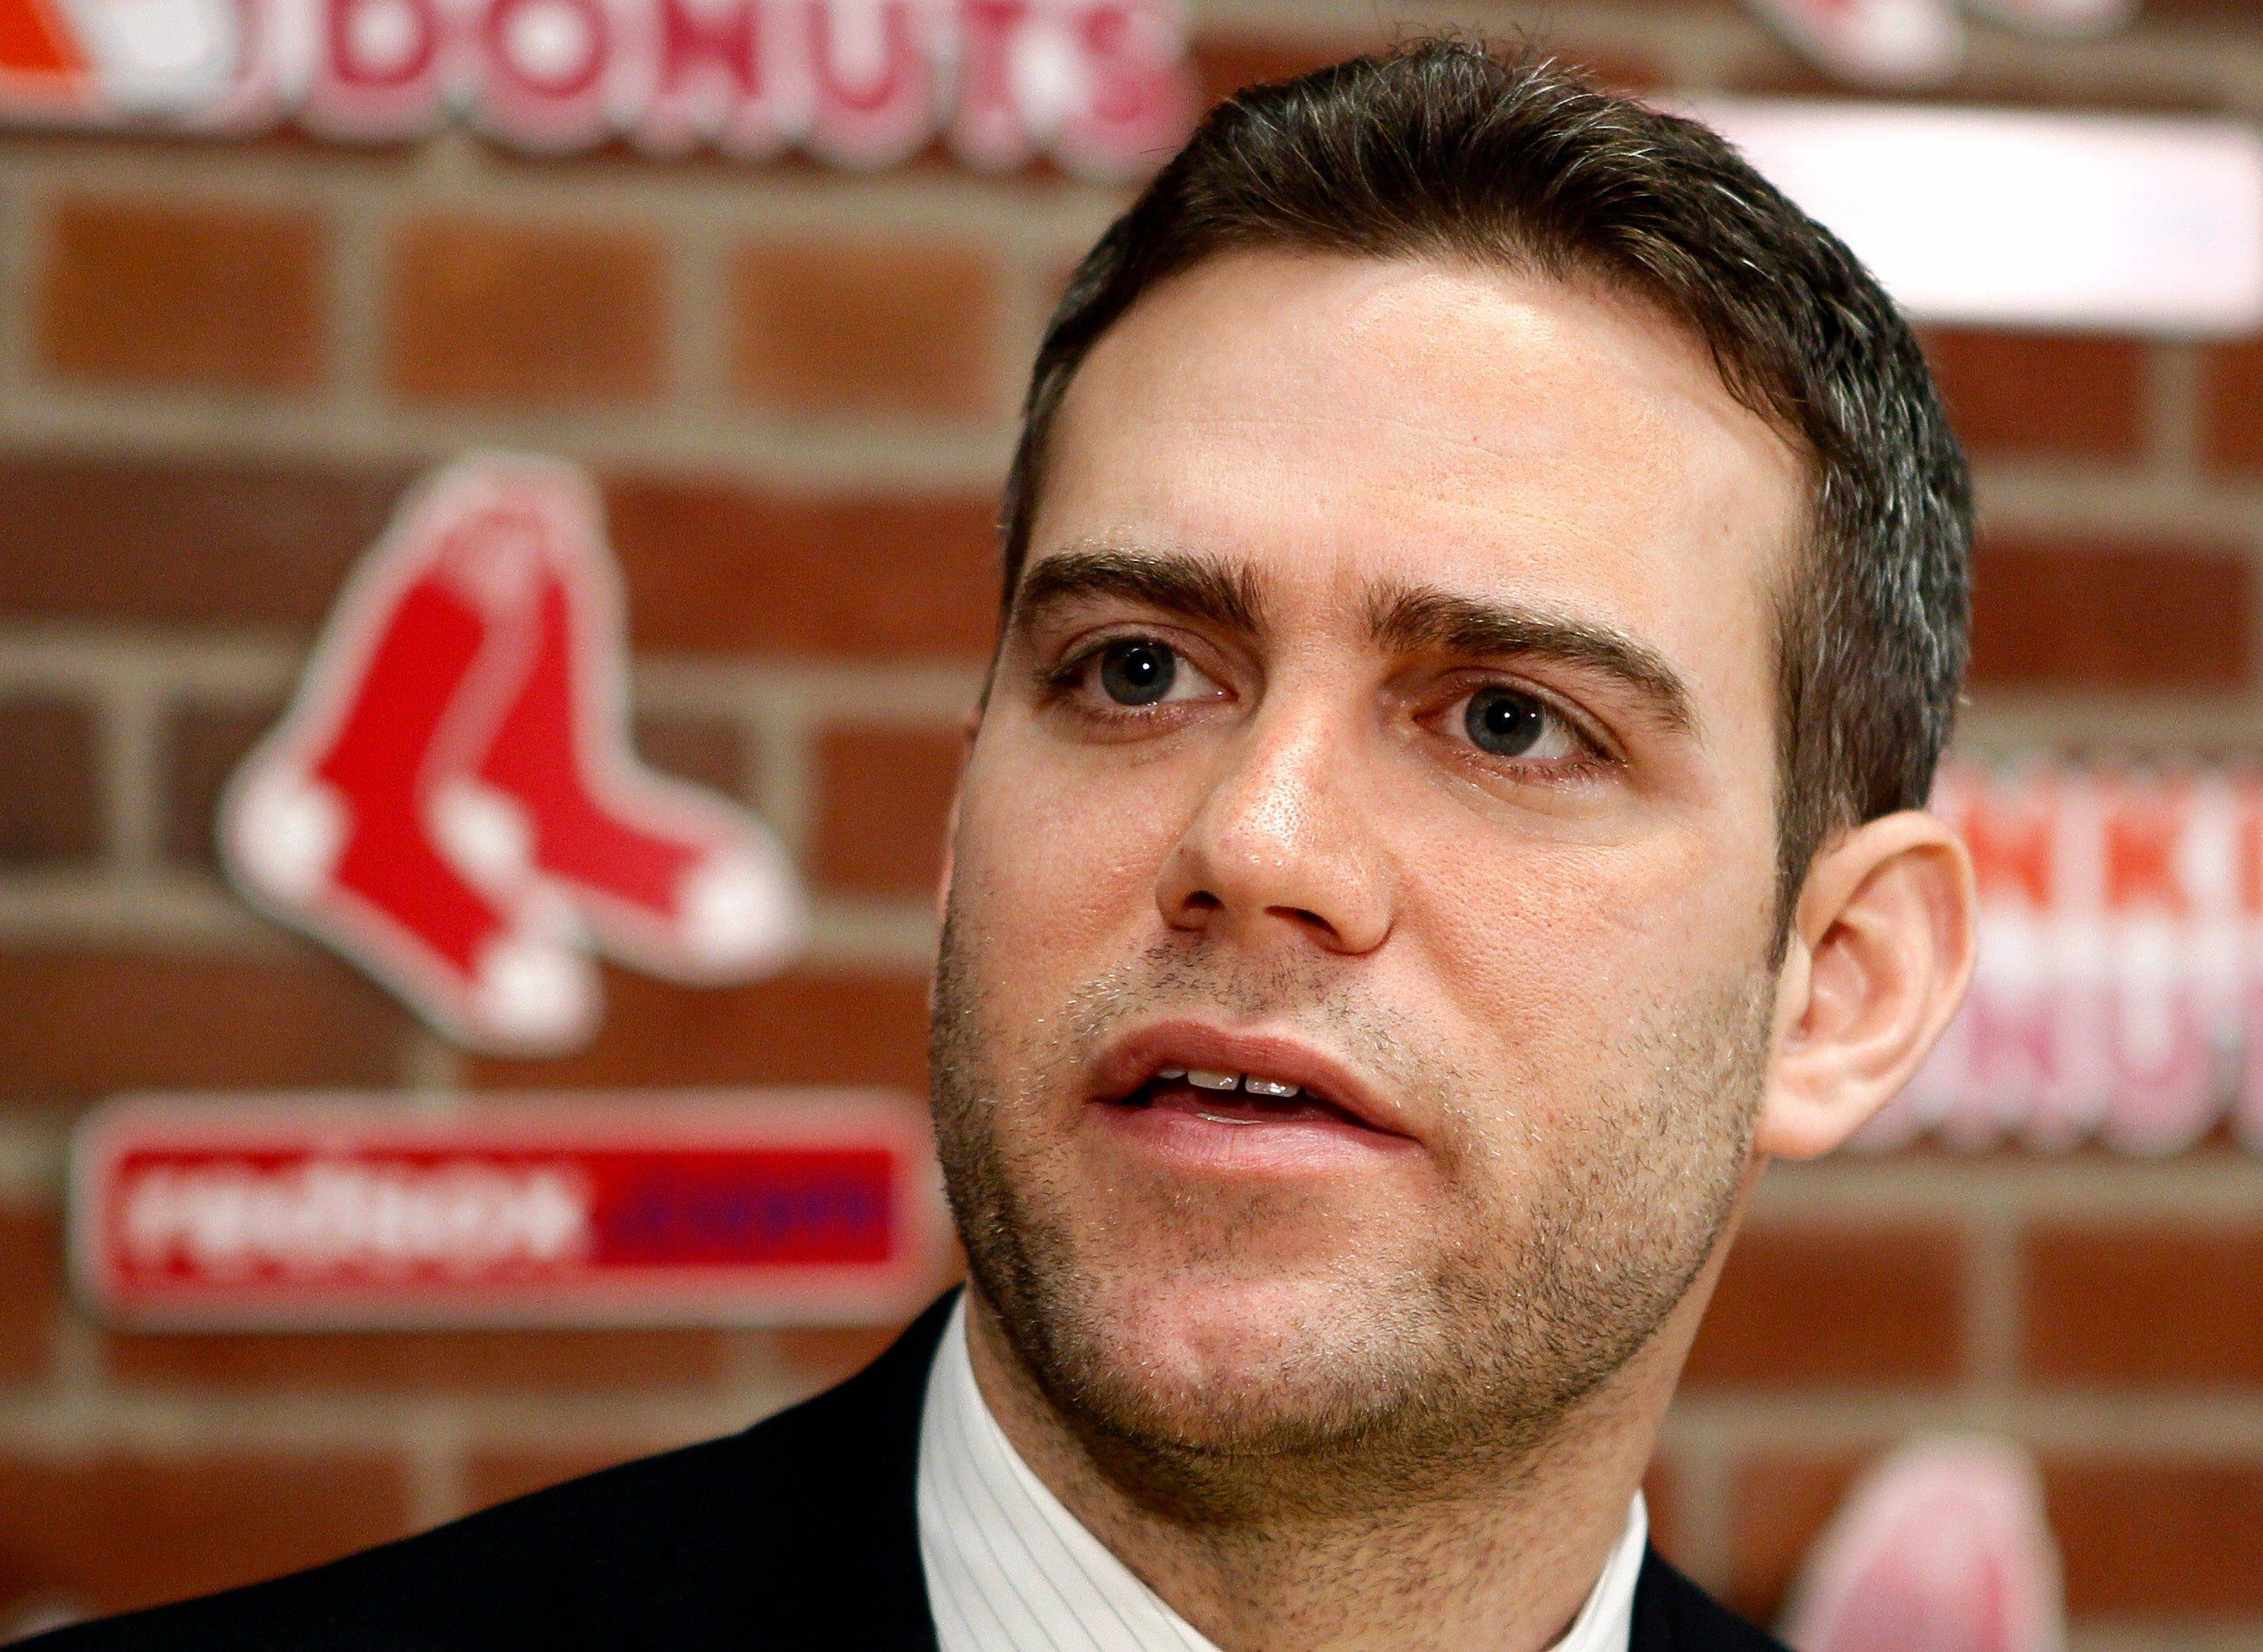 The date of Theo Epstein's arrival in Chicago is yet to be determined.